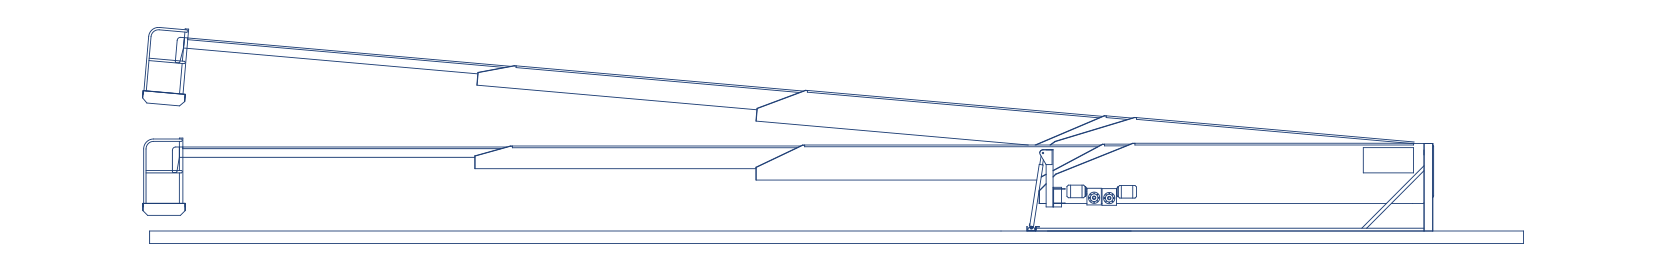 man rider conveyor diagram